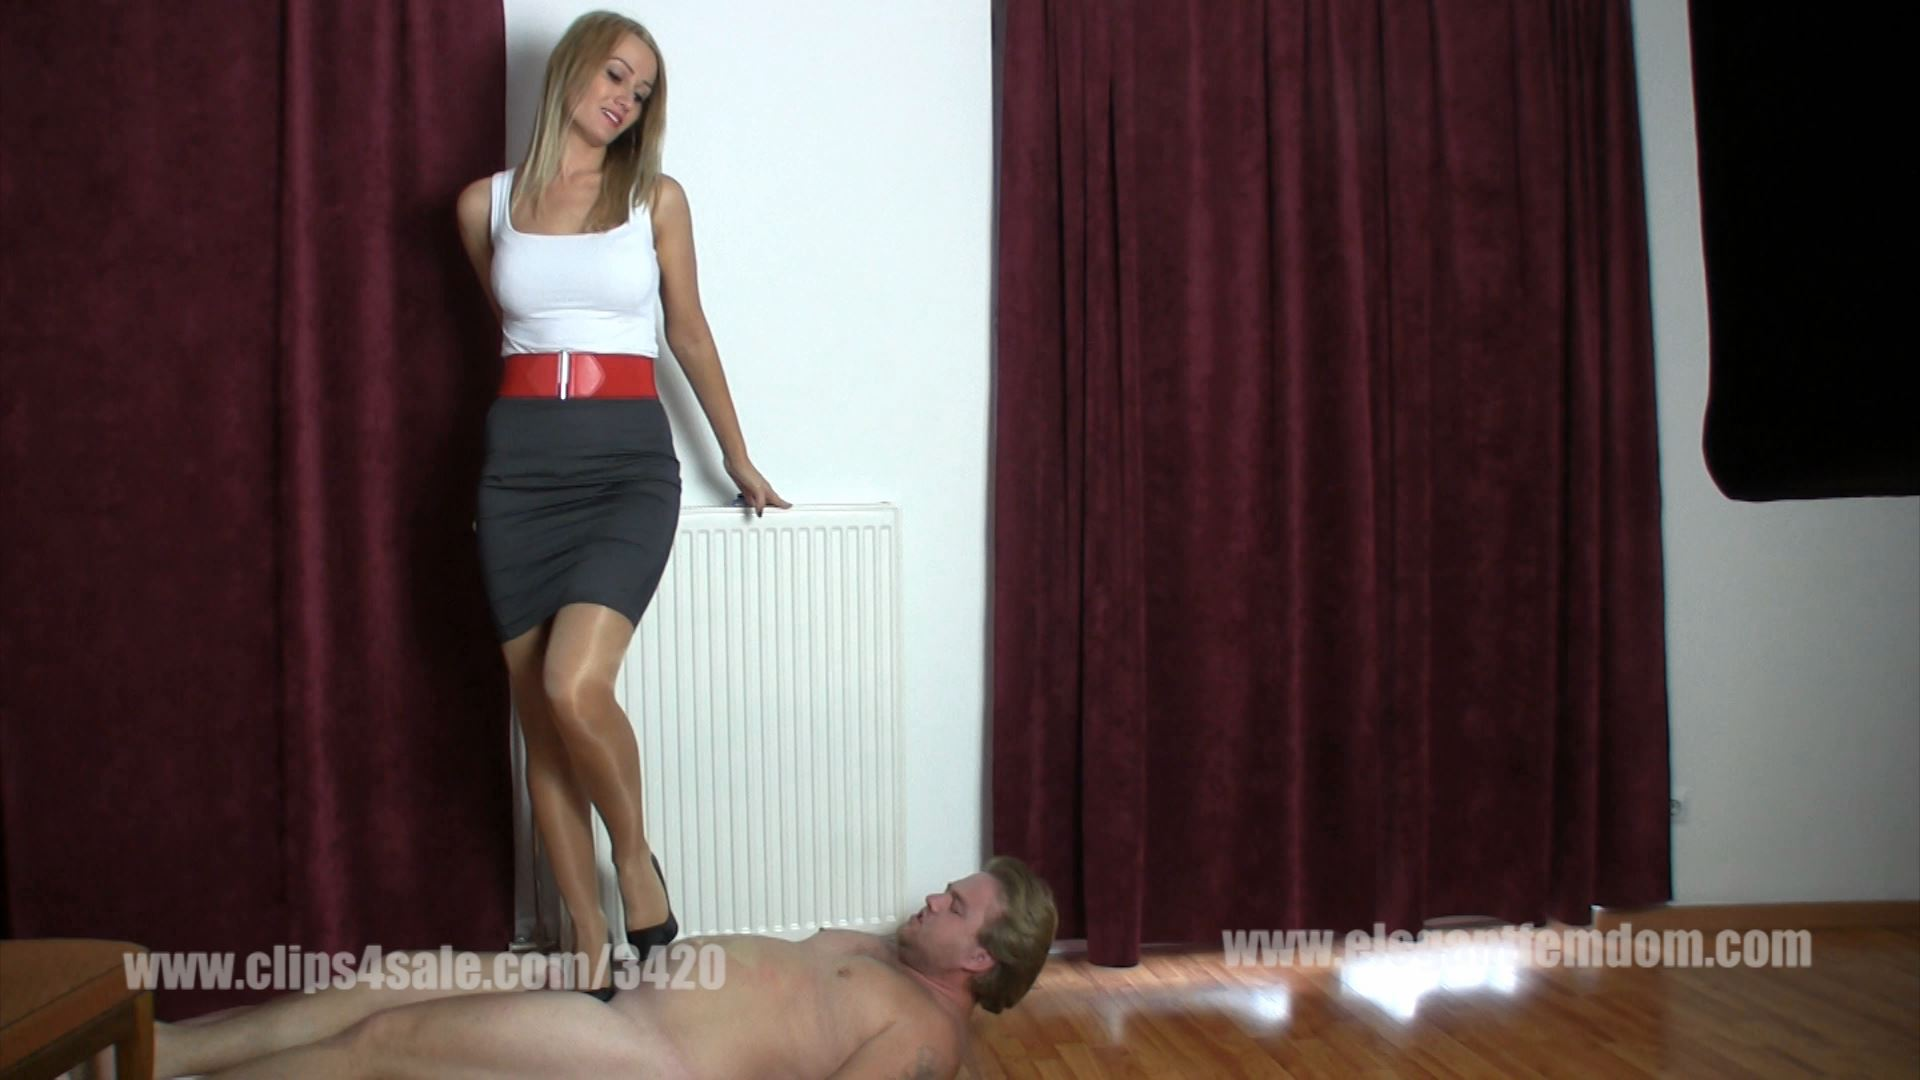 Cruel high heels trampling - ELEGANTFEMDOM - FULL HD/1080p/MP4